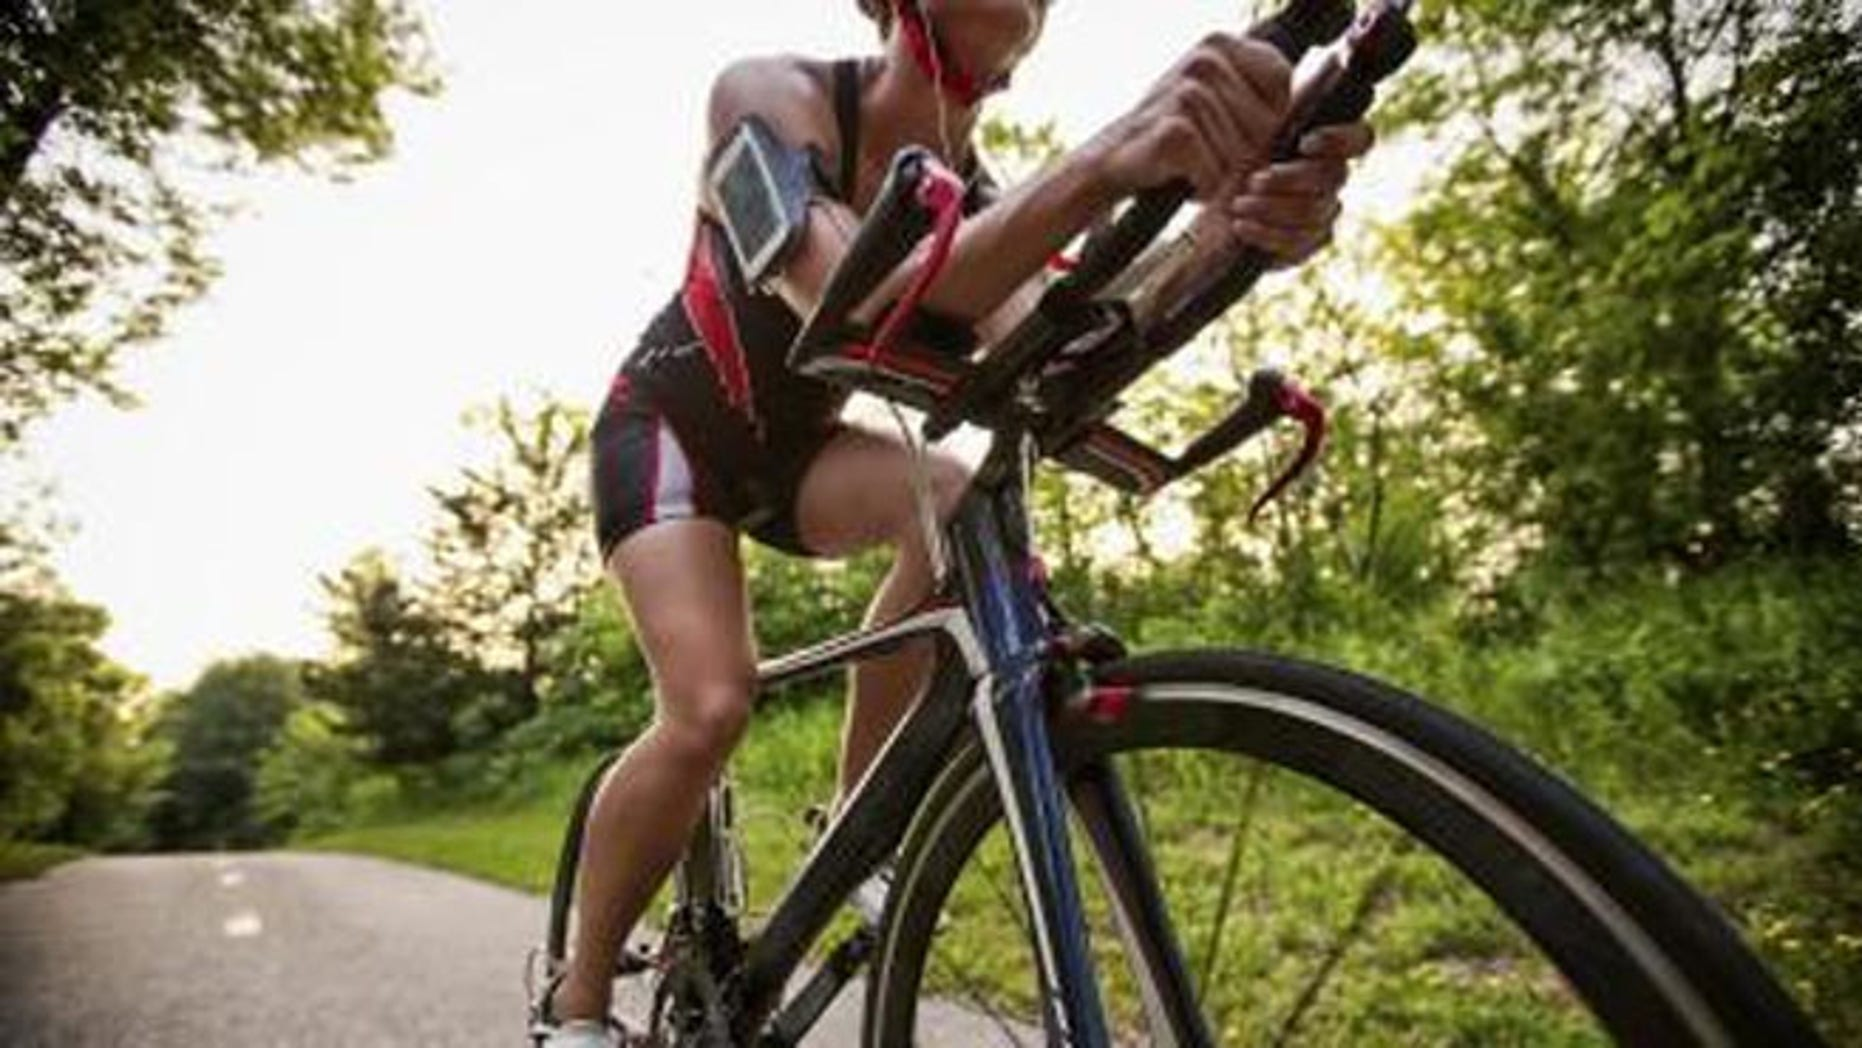 The number of cycling enthusiasts grew by 10 percent to 3.8 million from 2012 to 2013.